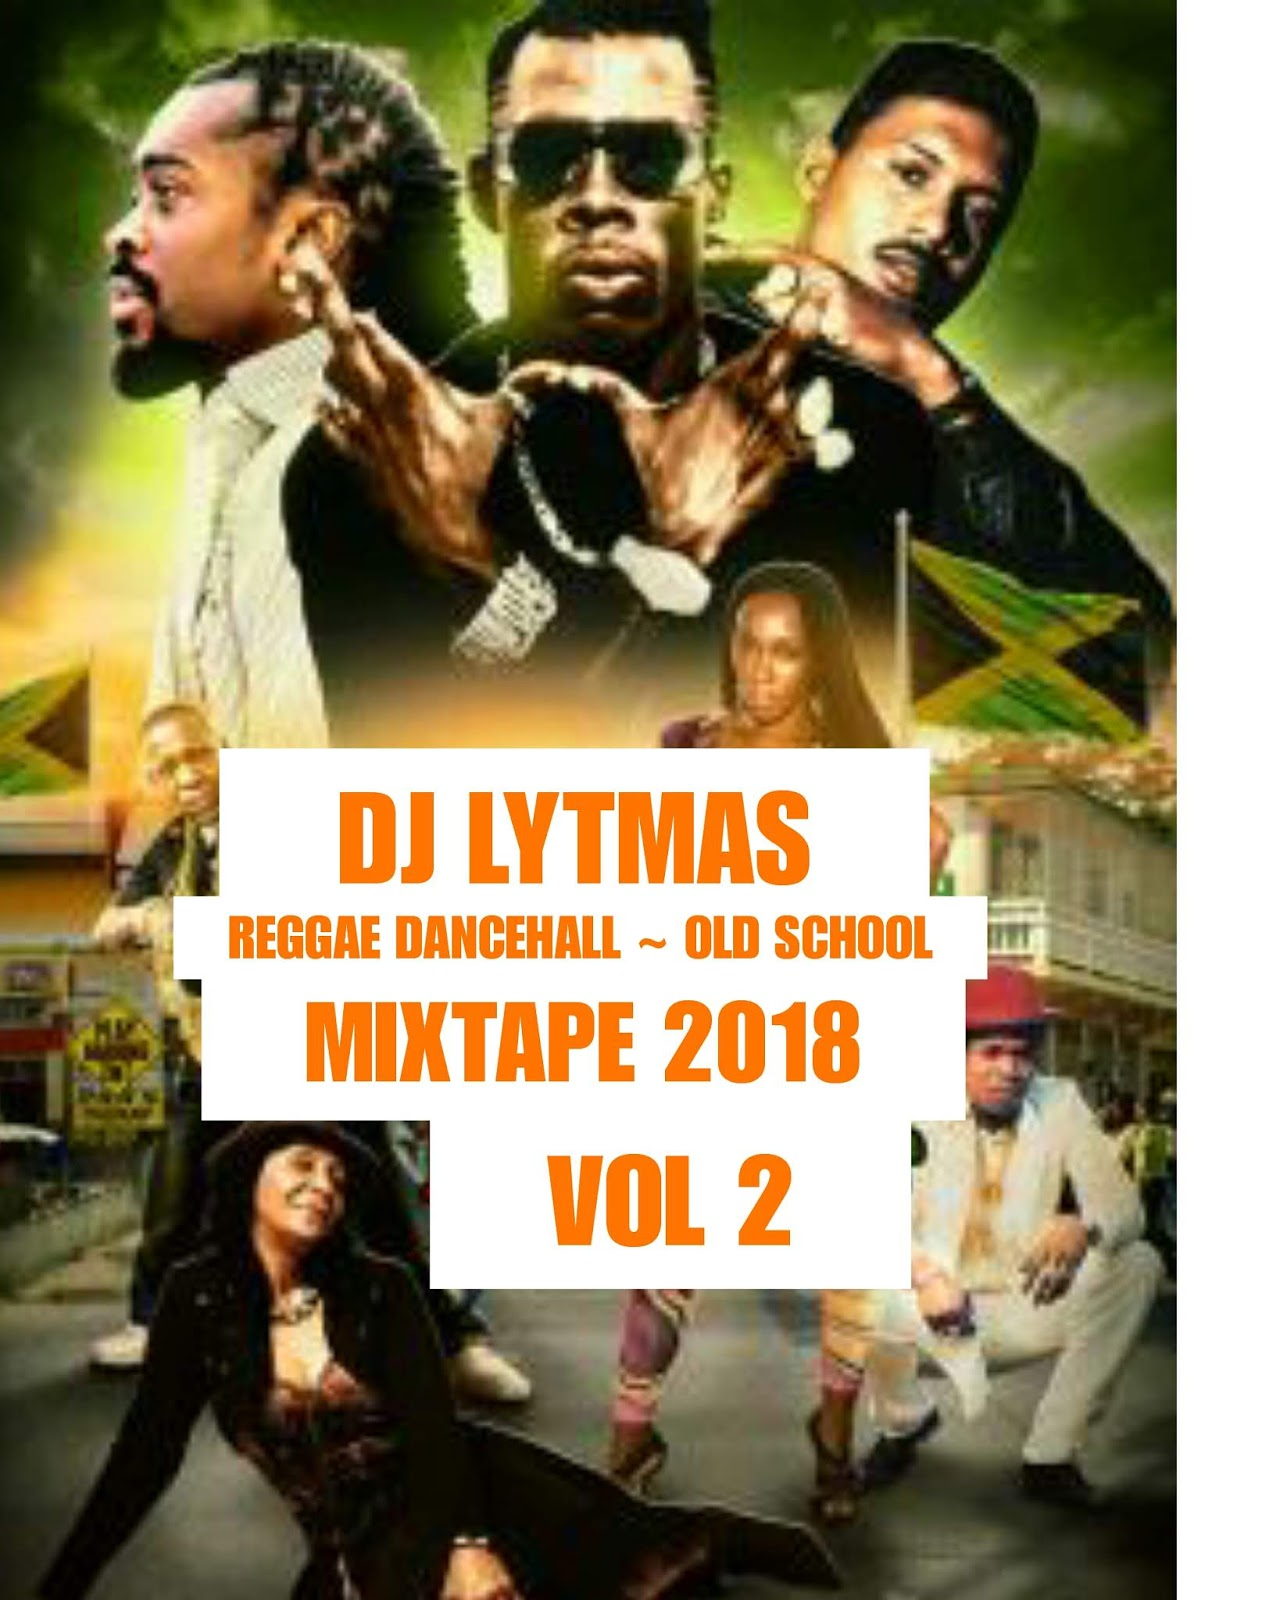 DJ LYTMAS - OLD SCHOOL REGGAE DANCEHALL MIX VOL 2 - DJ LYTMAS